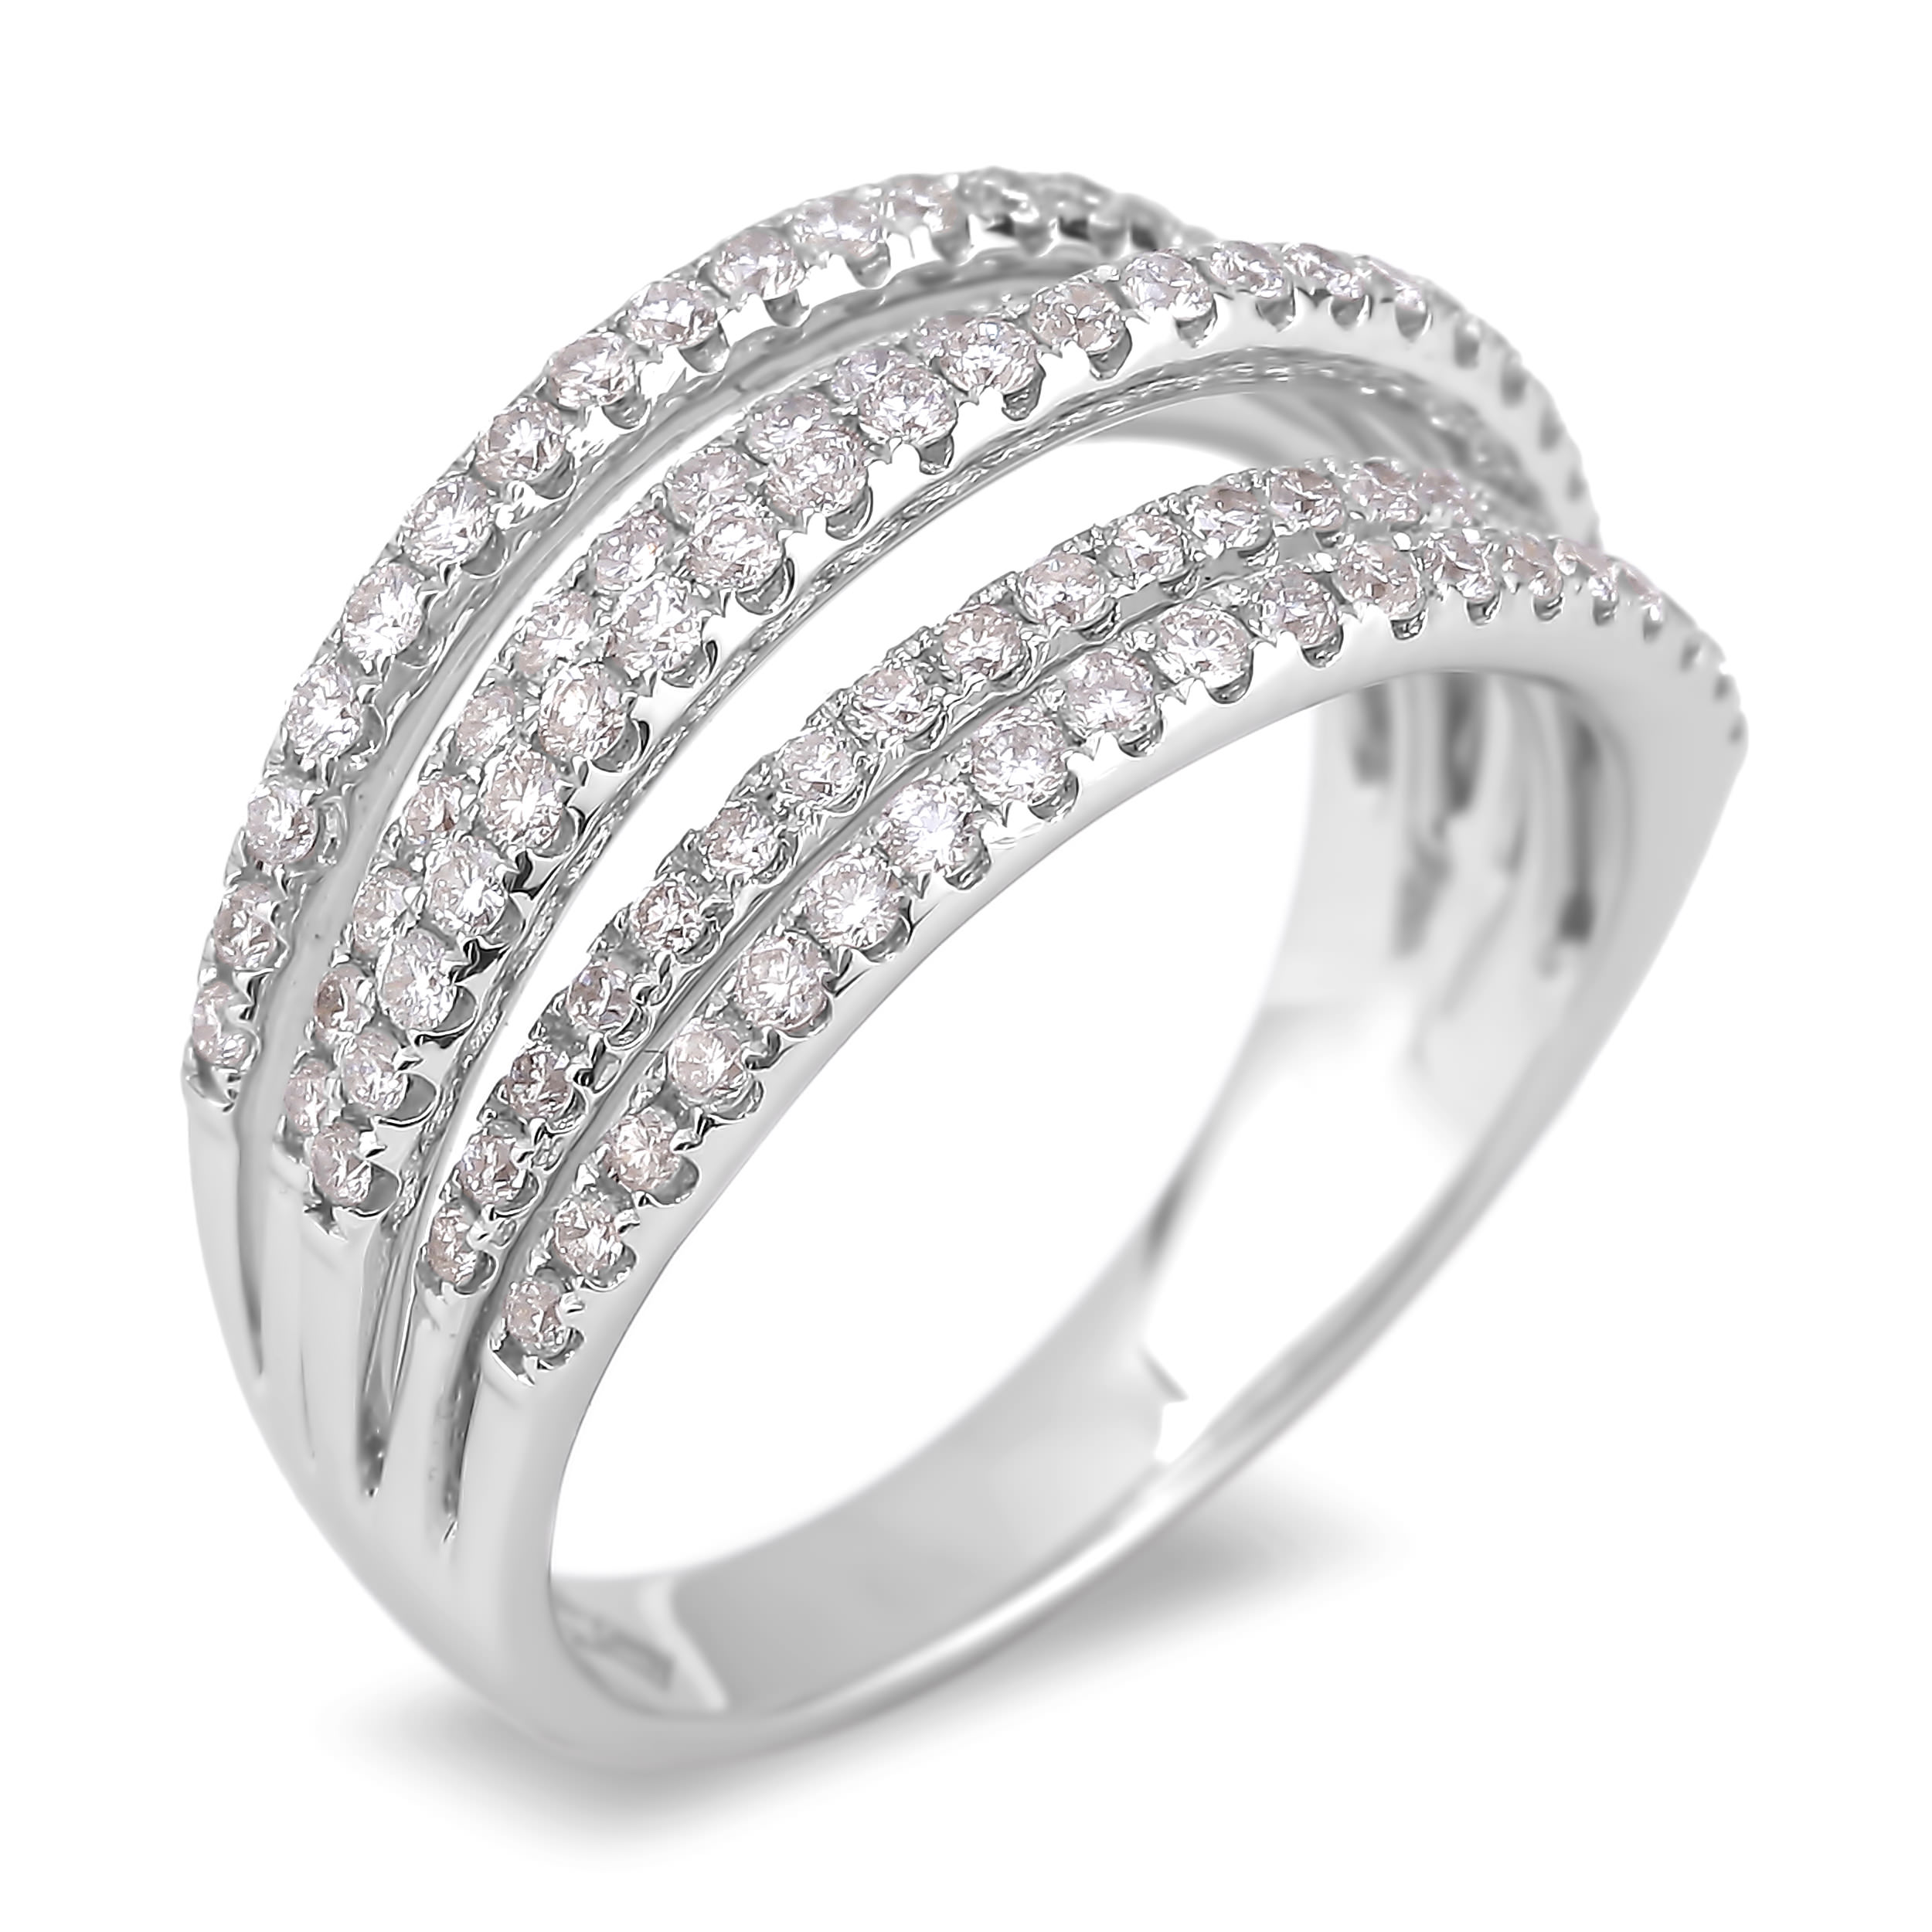 details anniversary product anaya collection gent diamond fine rings jewellery